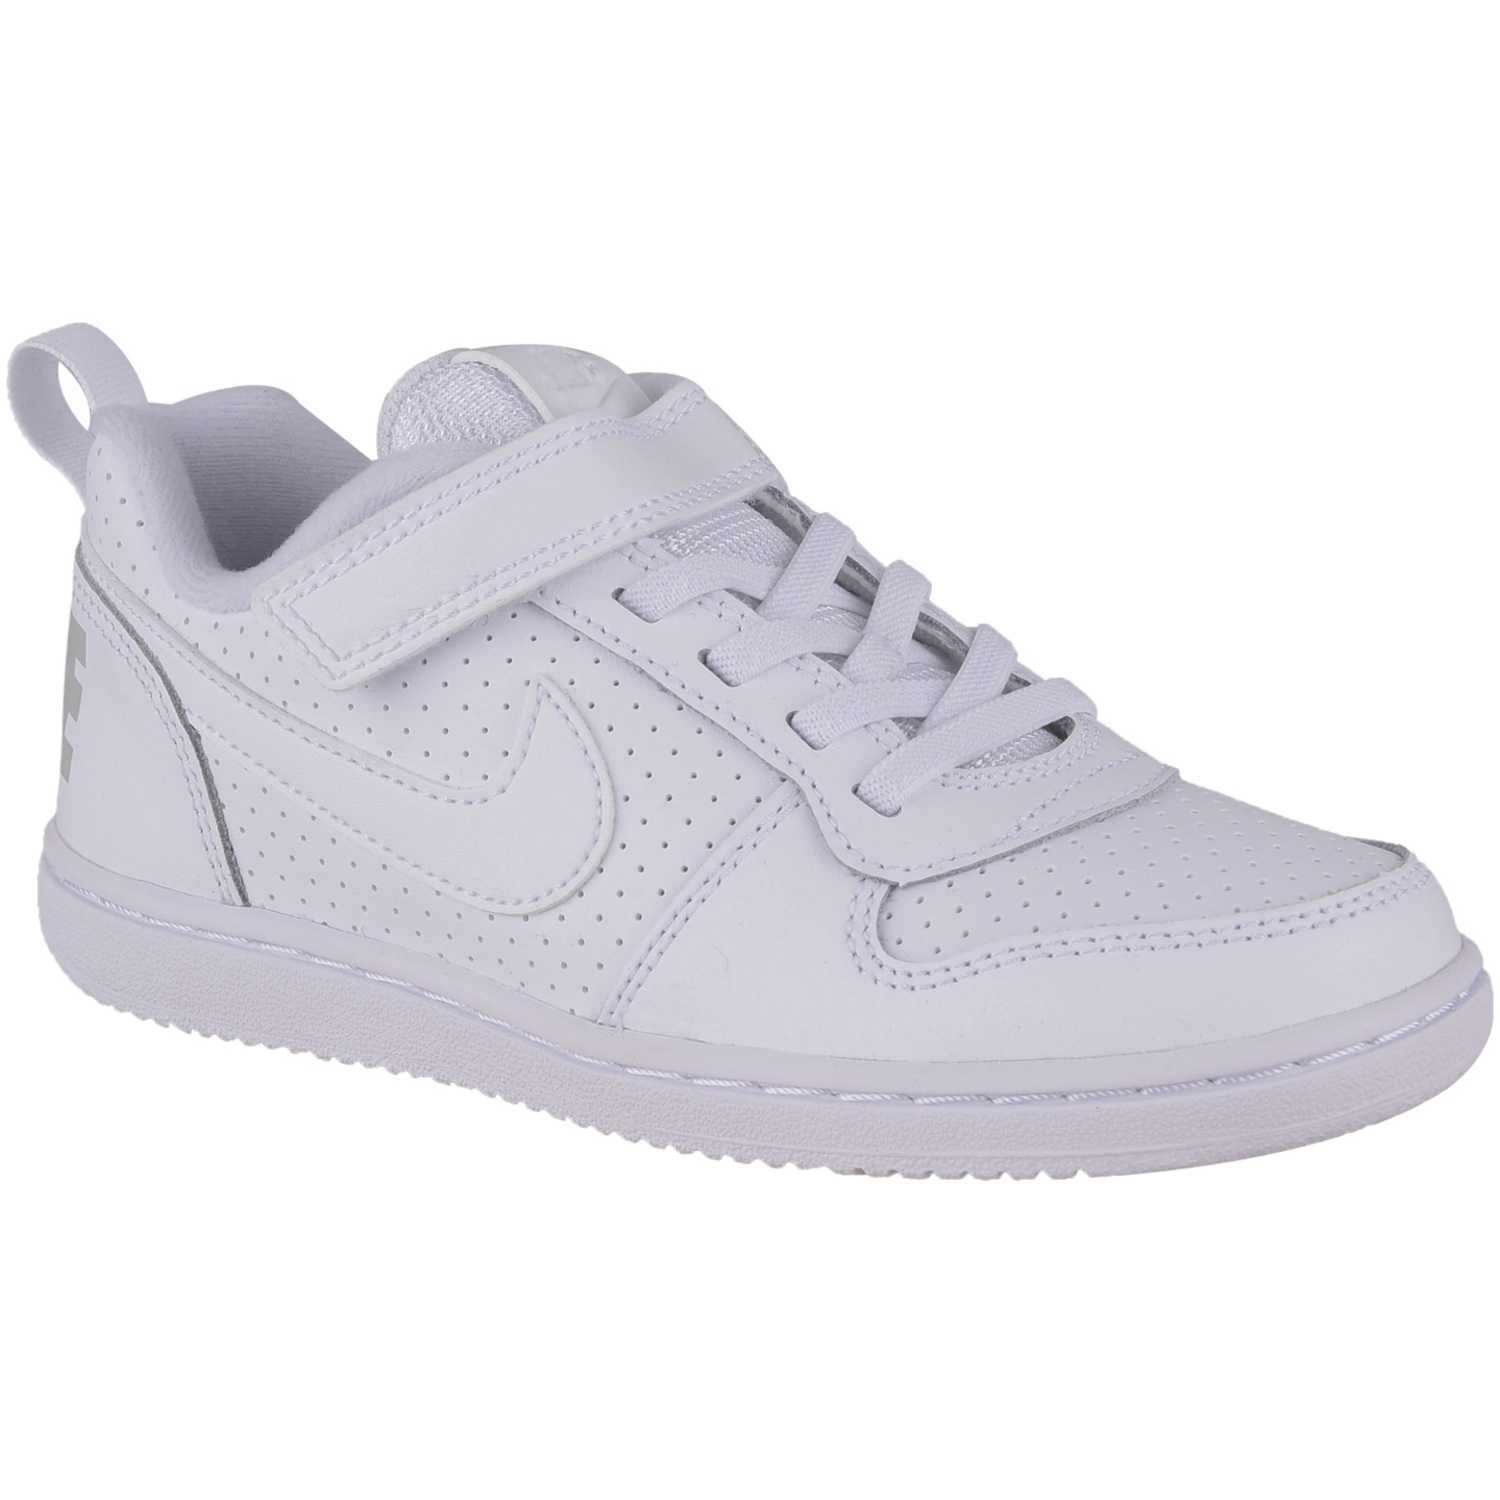 Calzado de Niño Nike Blanco nk court borough low bpv  9f9fc59a048